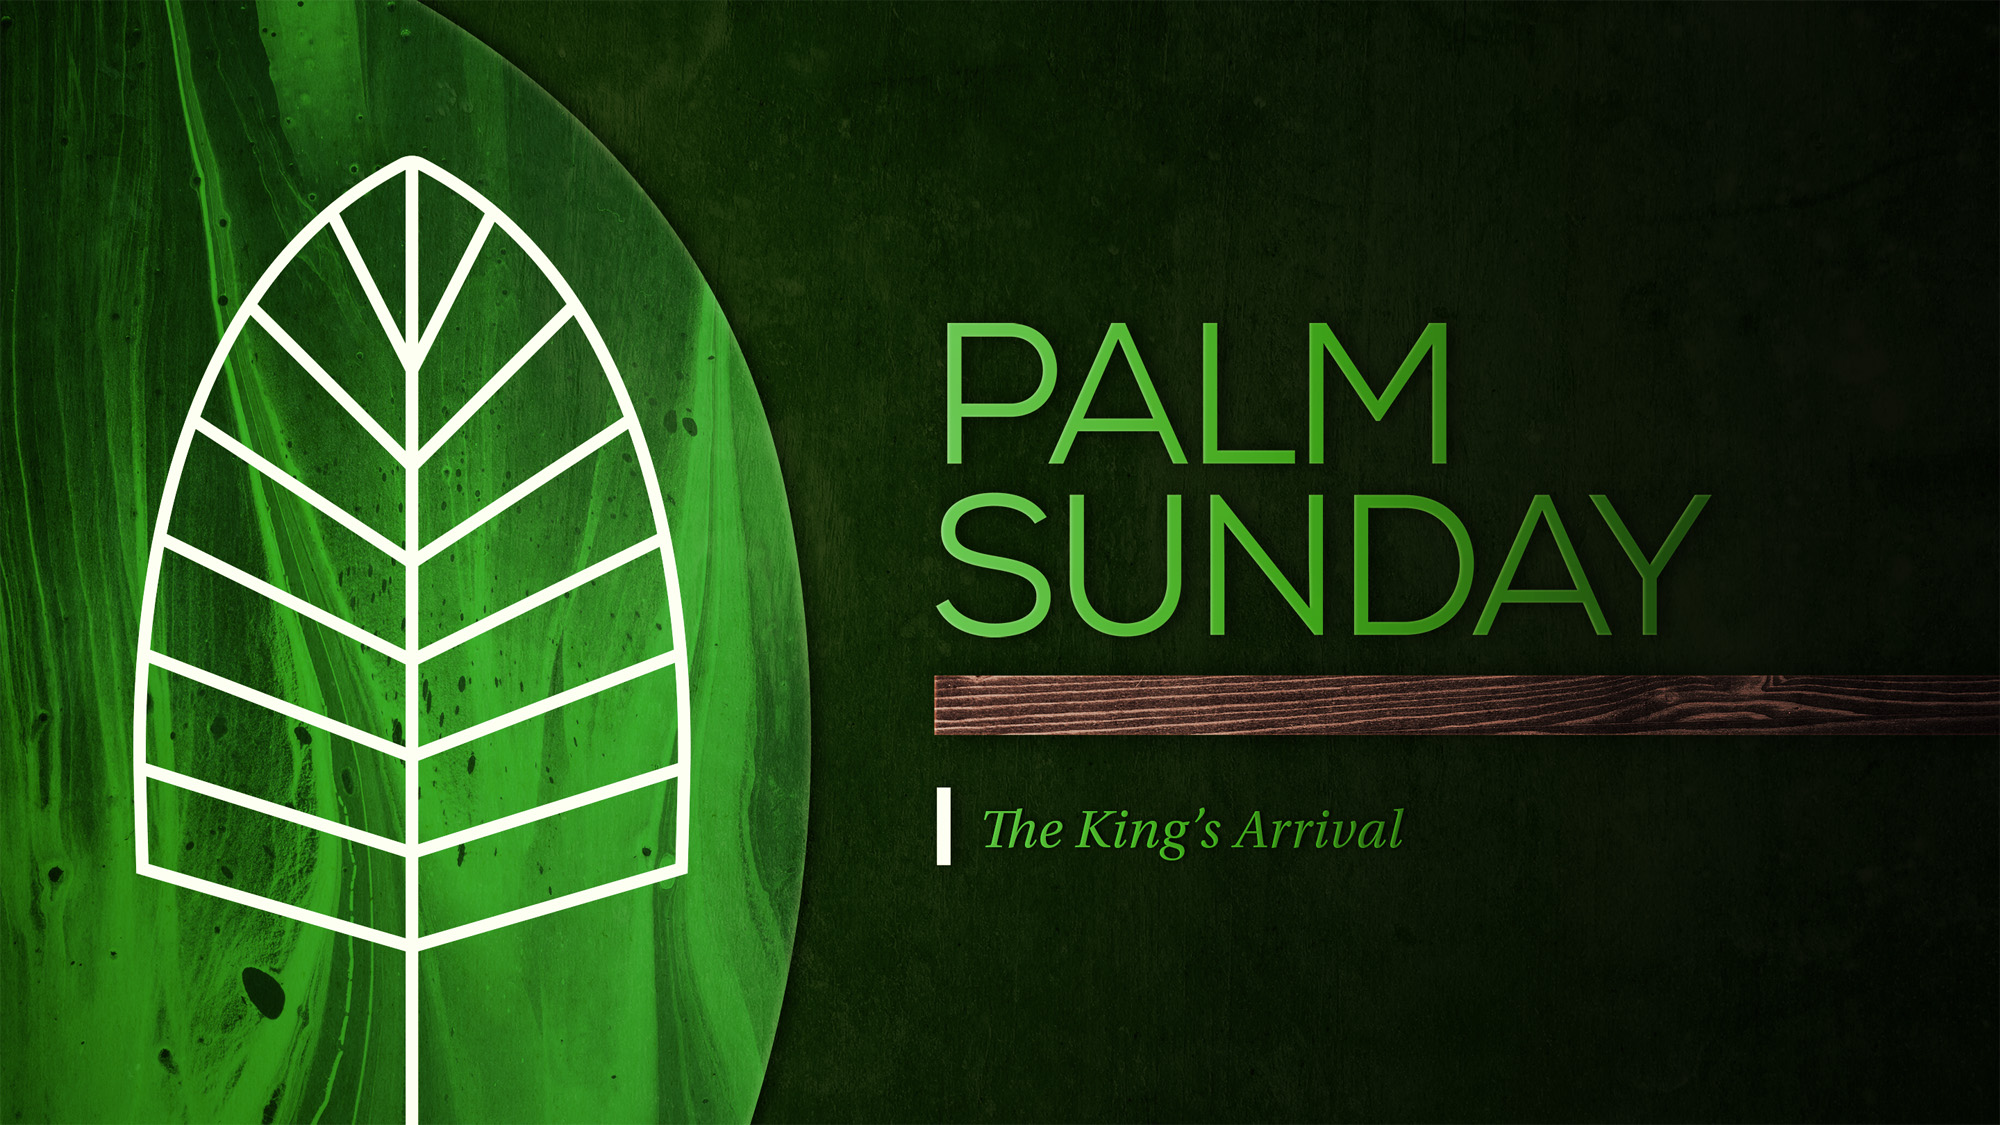 mixed_textures_palm_sunday-title-1-Wide 16x9.jpg